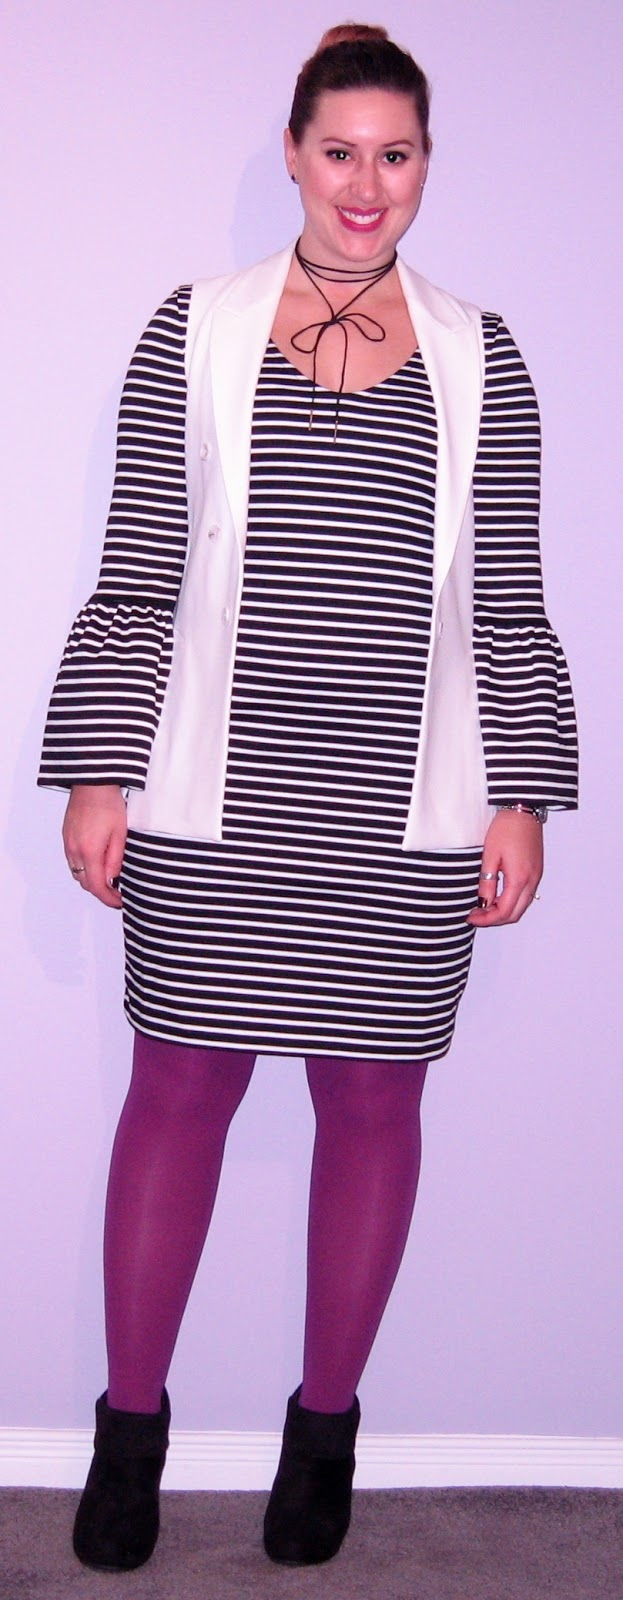 ff05a908da Today s outfit started out pretty basic and monochromatic. I had a black  and white striped bell-sleeve dress with a ...